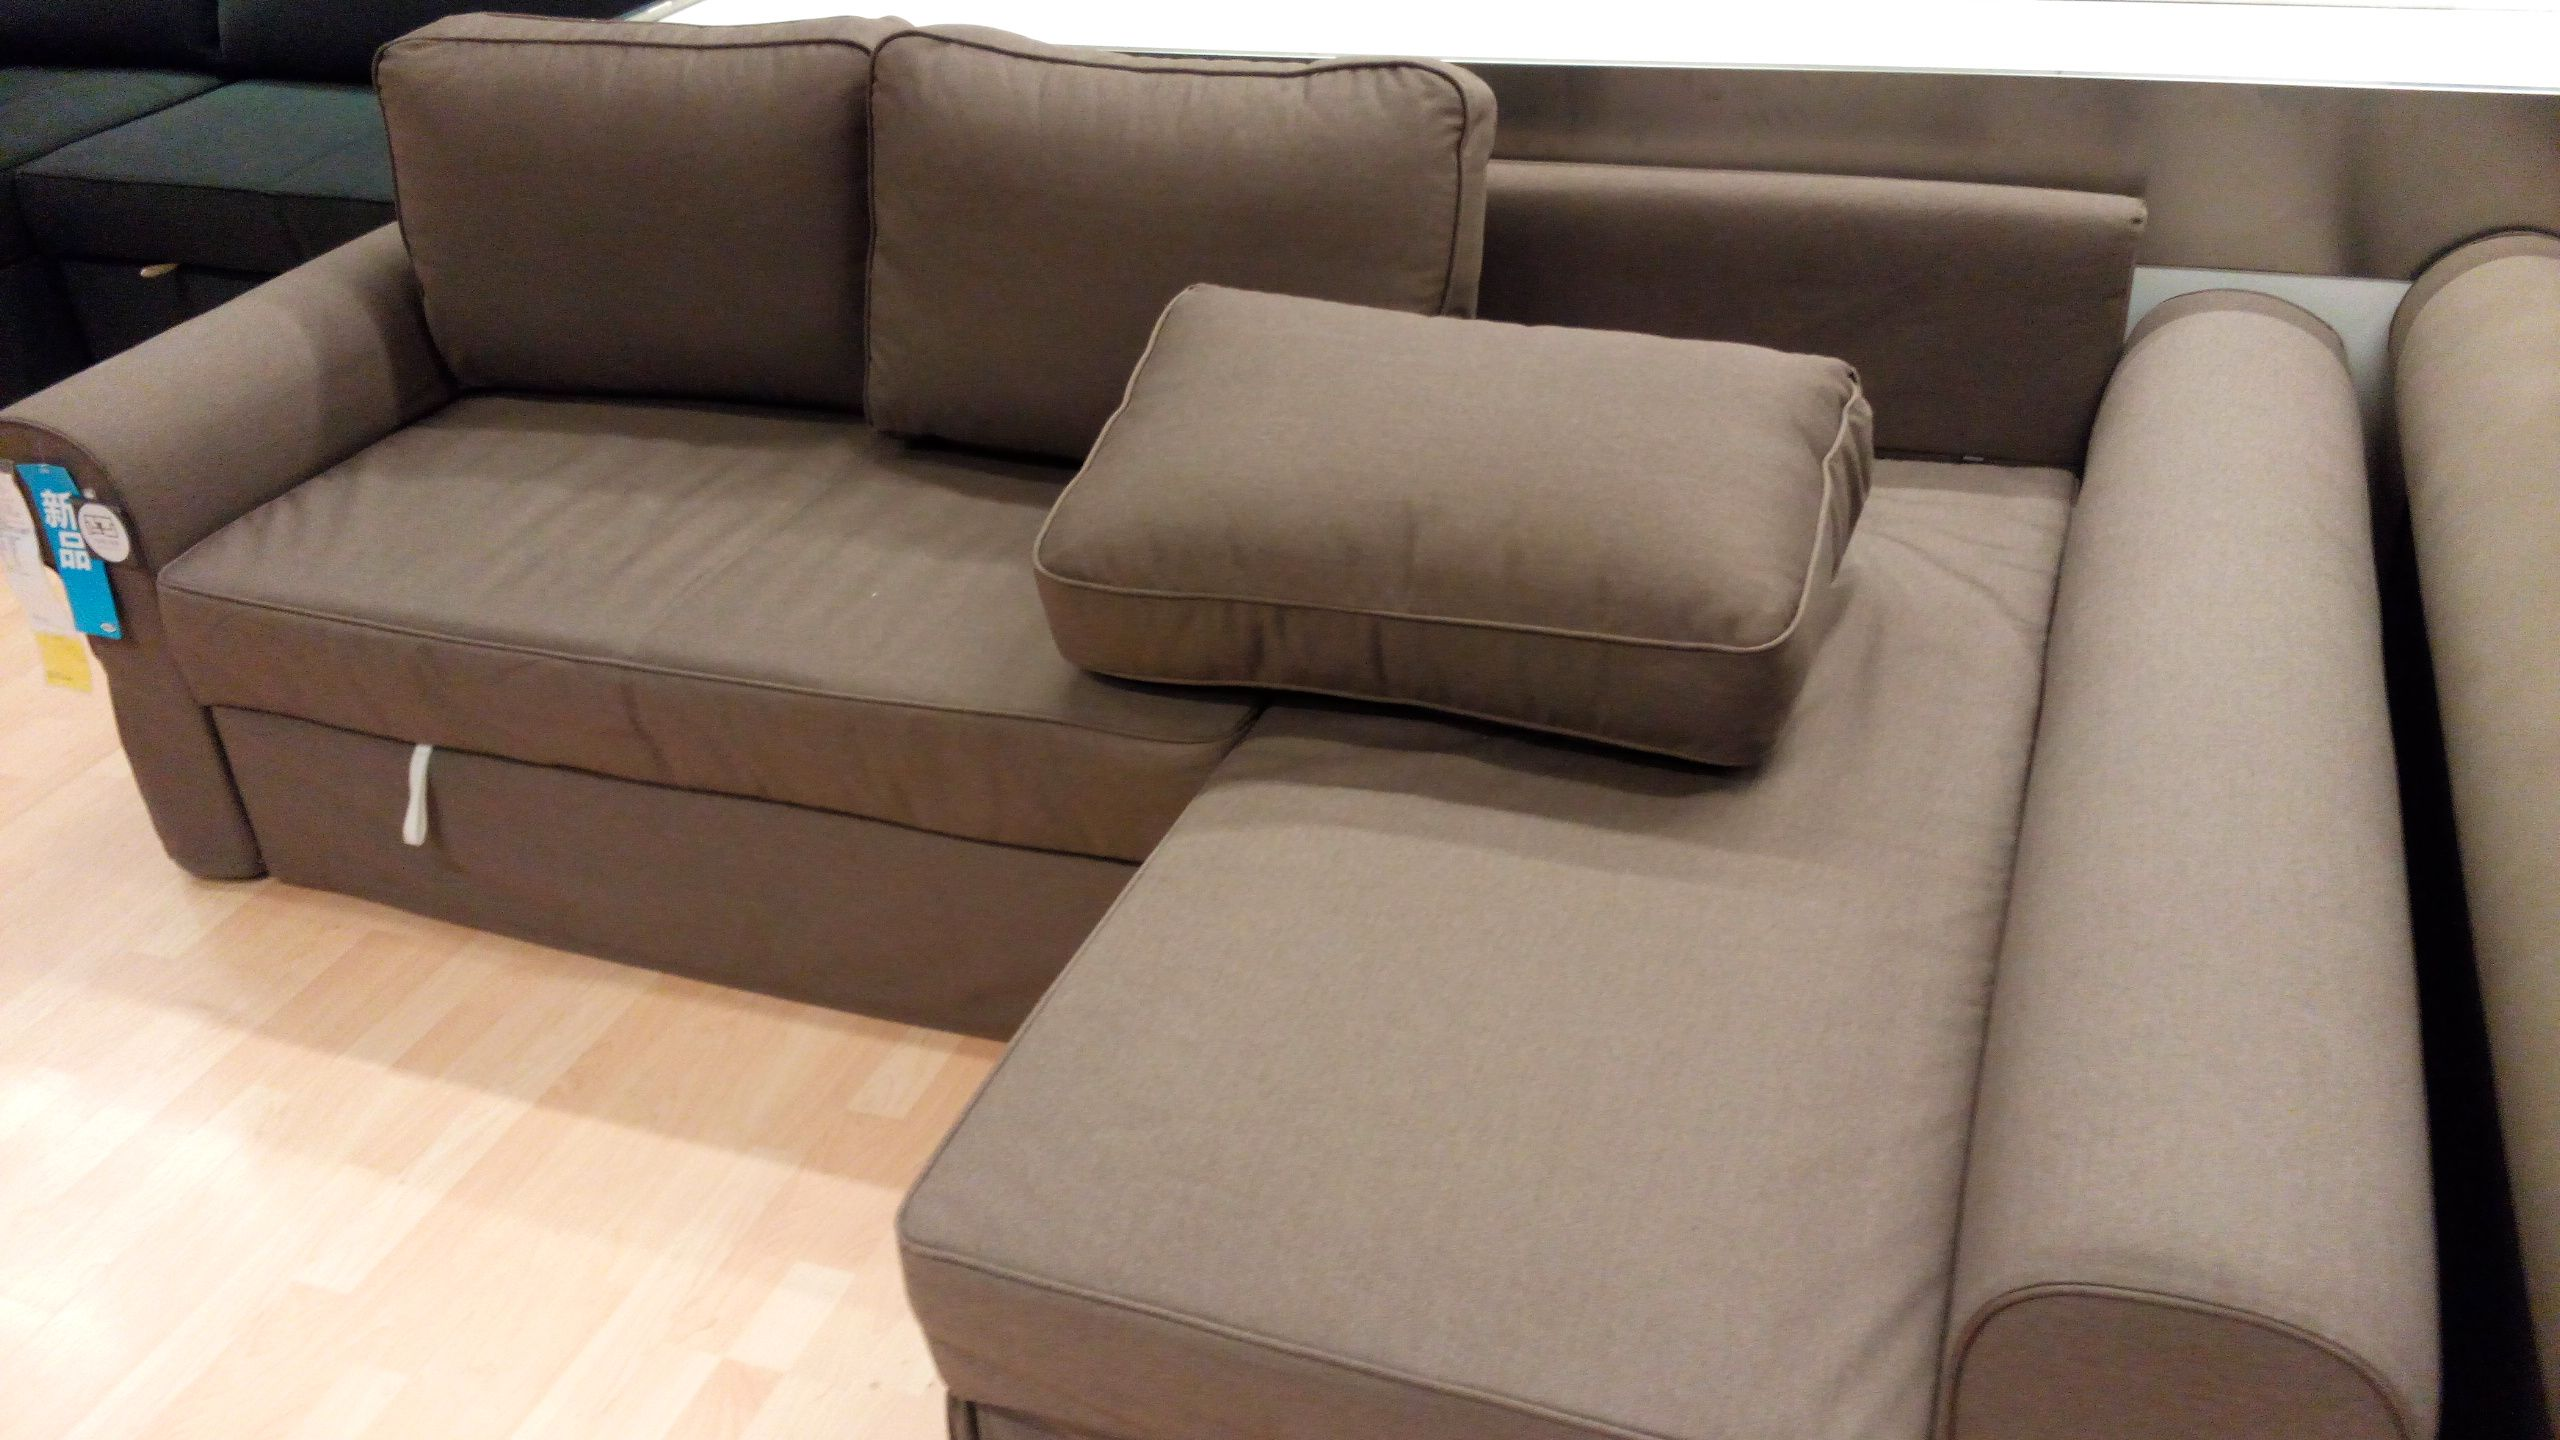 Manstad Sectional Sofa Bed Storage From Ikea Sectional Sleeper Sofa Ikea Sectional Sofa Sleeper Sofa Ikea